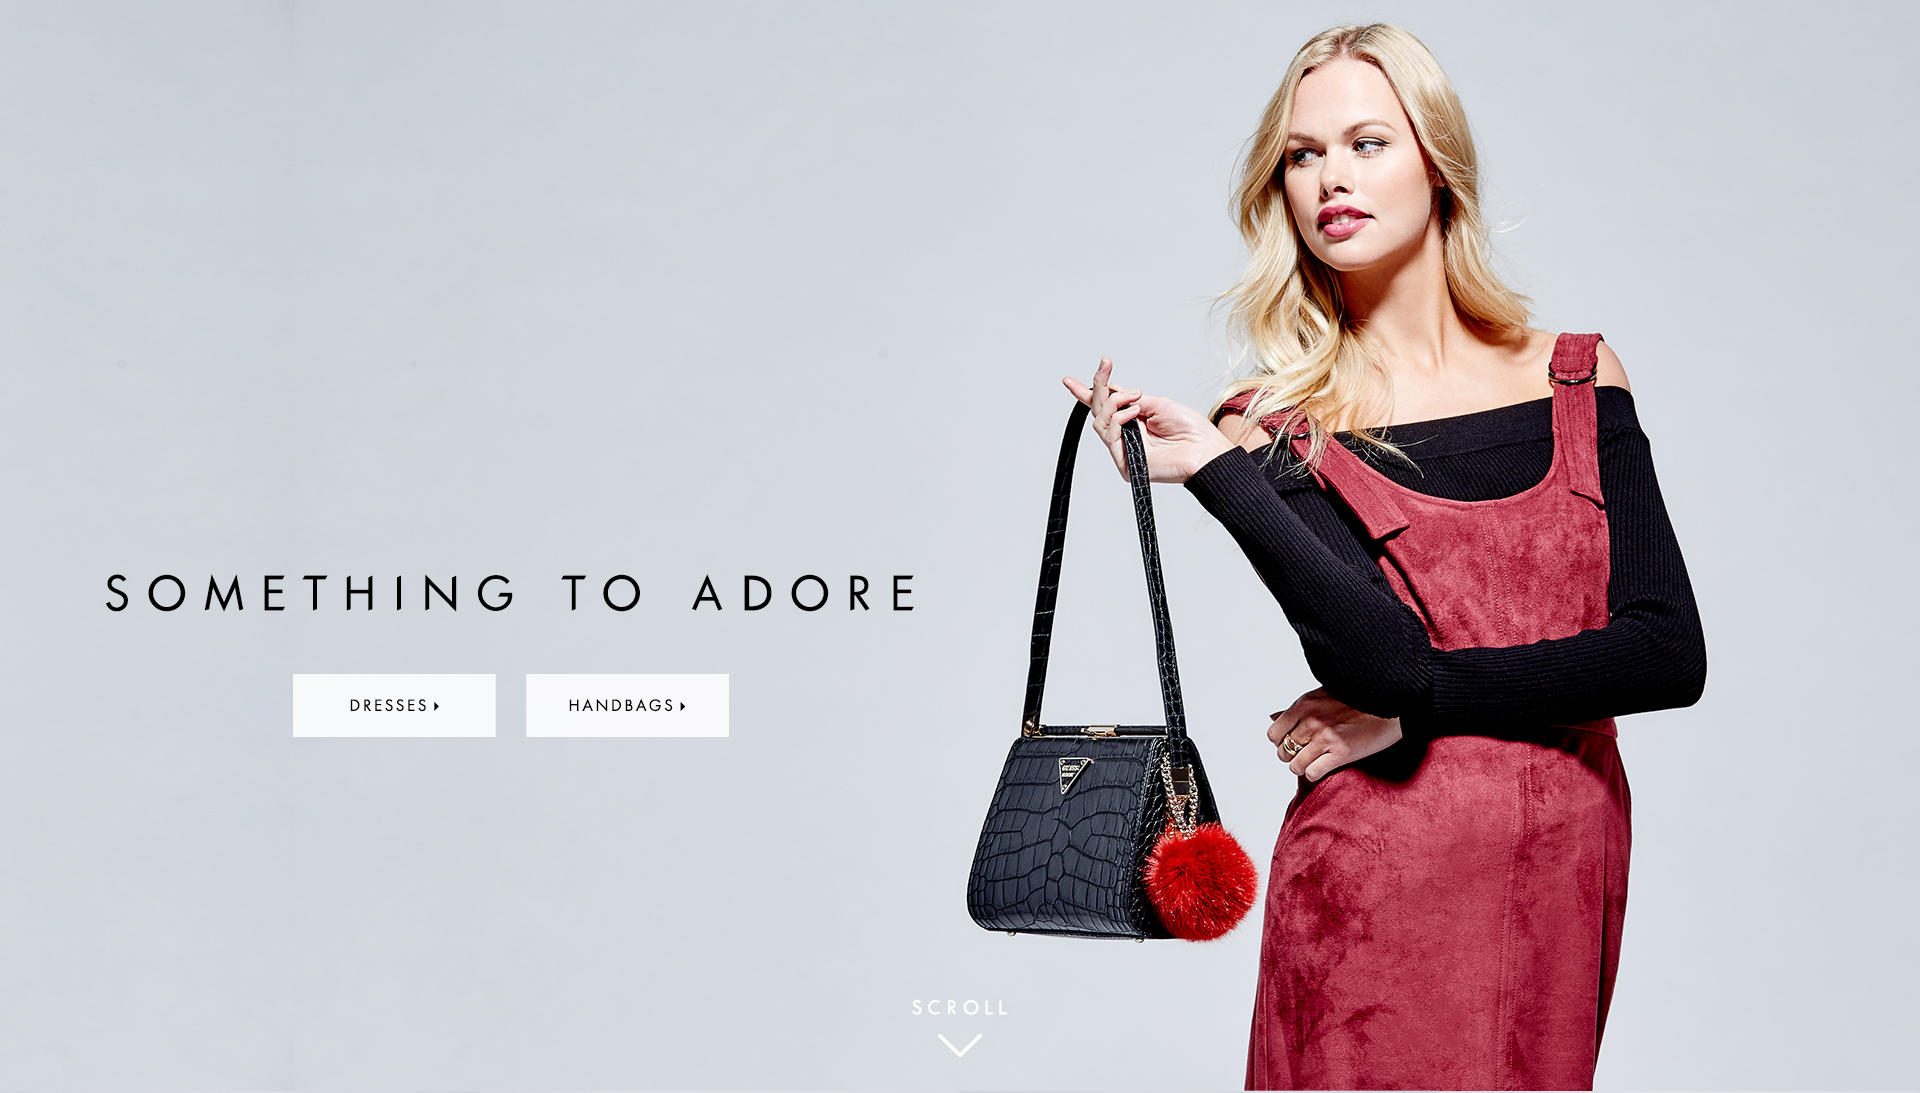 Something to Adore: Dresses & Handbags